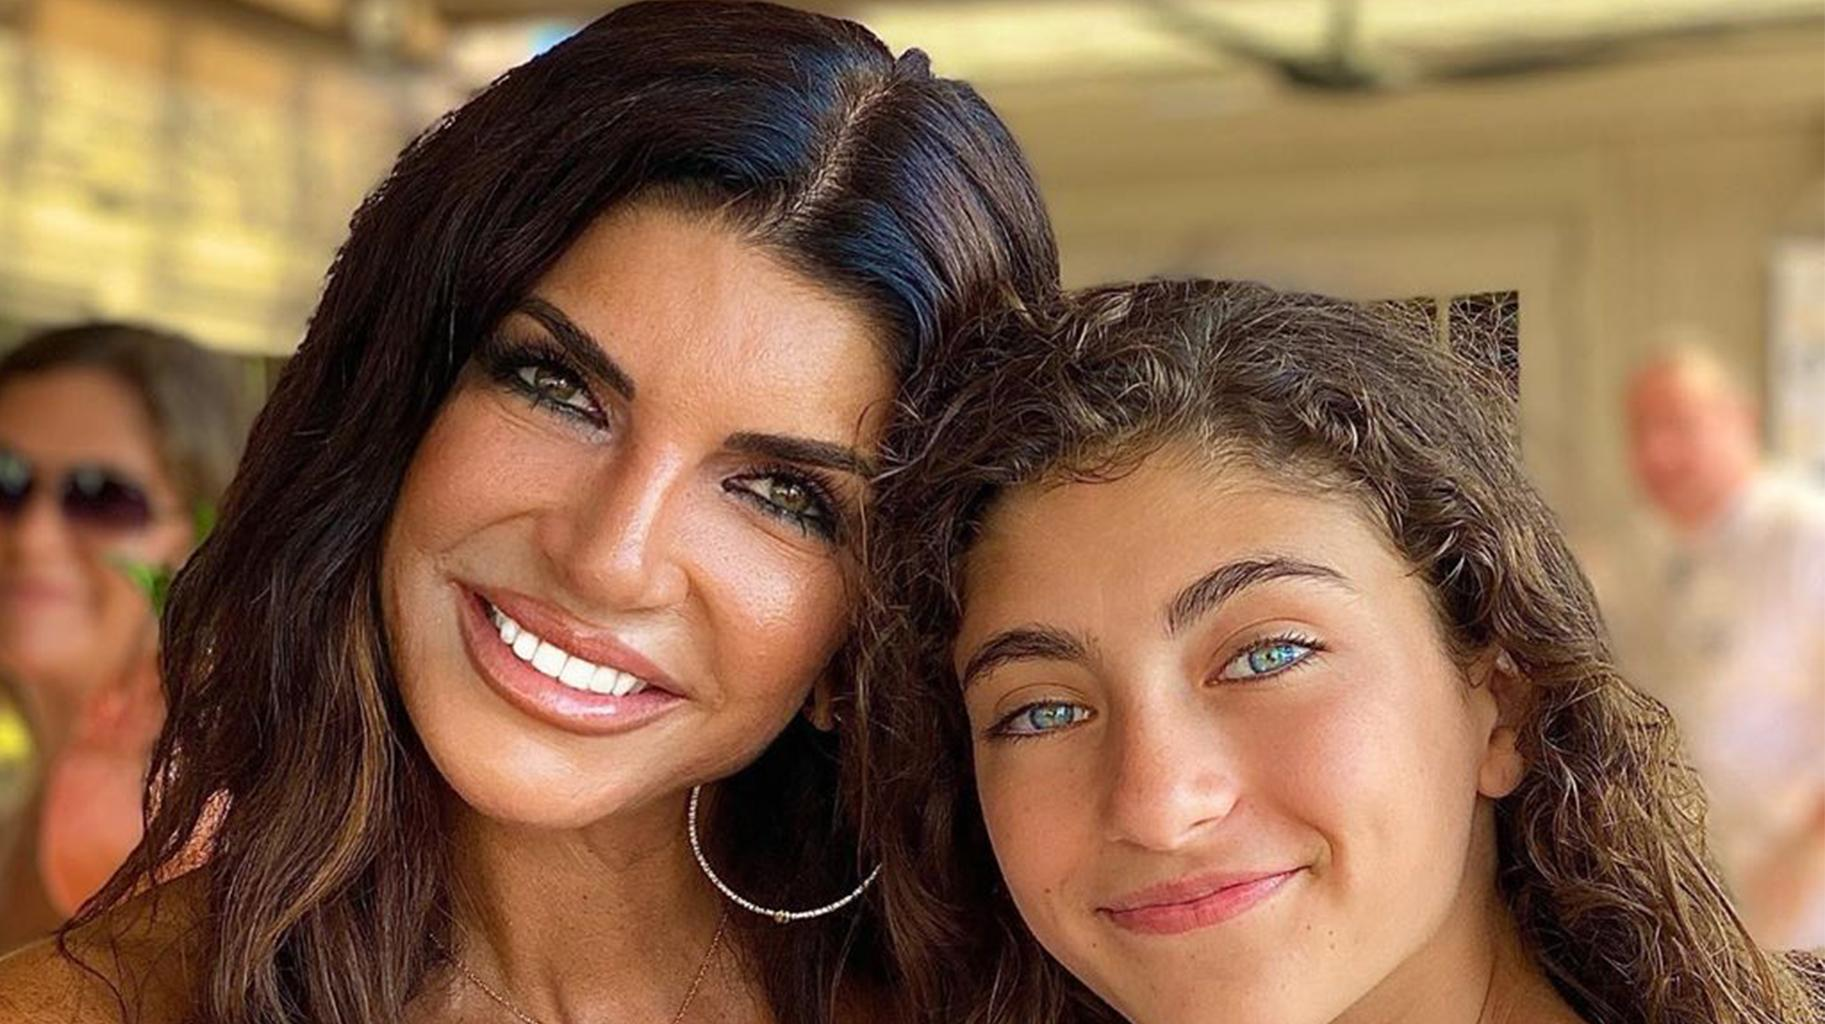 Teresa Giudice's Youngest Daughter Looks All Grown Up In New Pic And Fans Can't Believe Their Eyes!